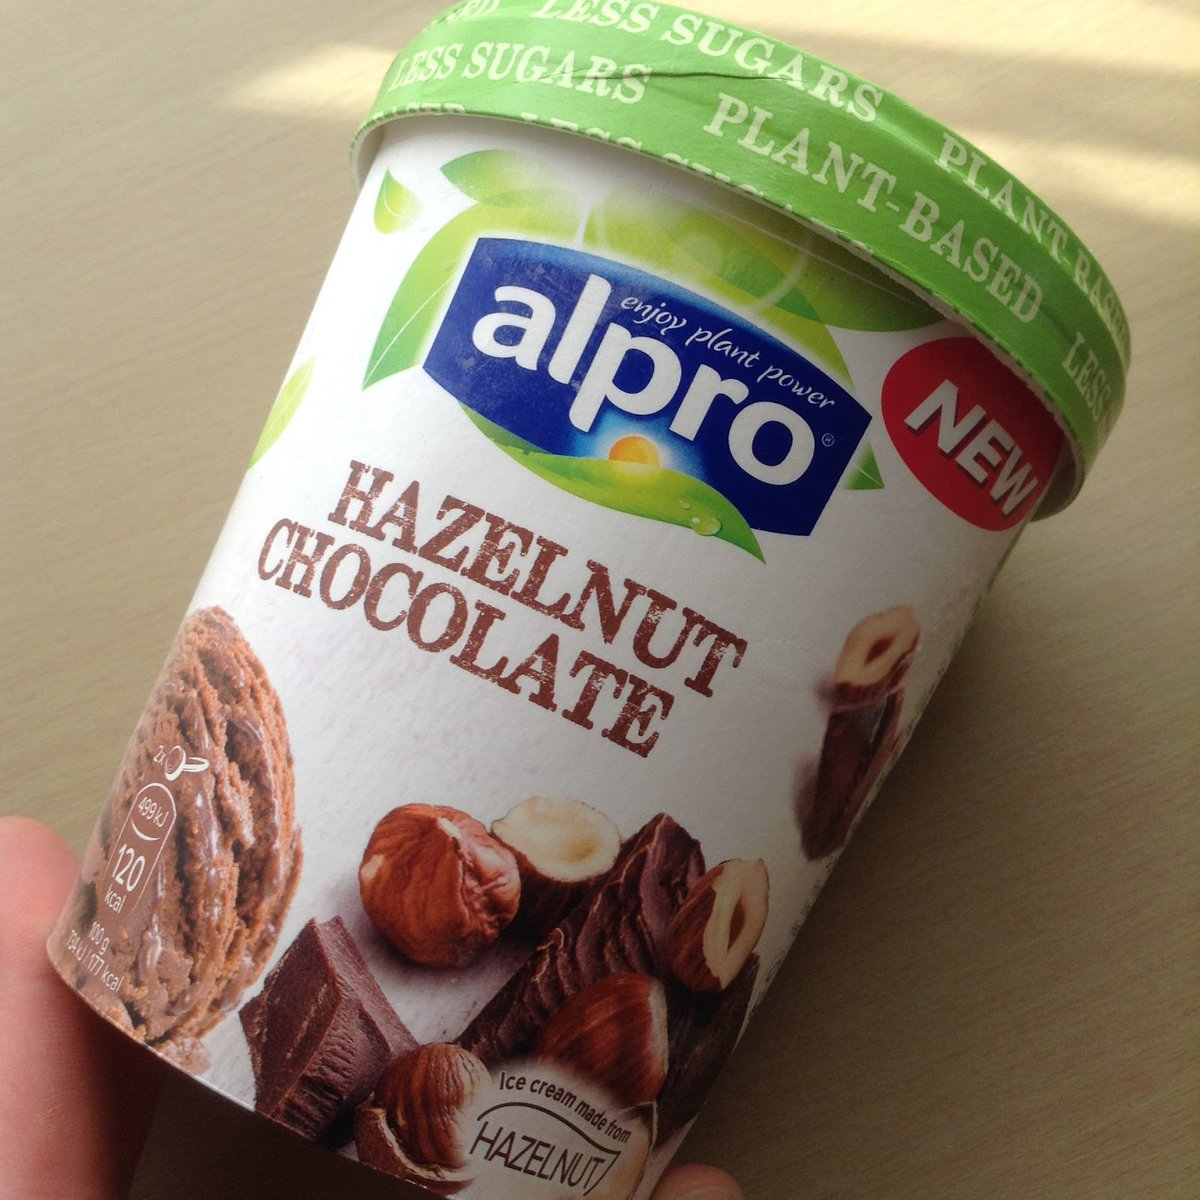 Kevs Snack Reviews On Twitter New Review Alpro Ice Cream